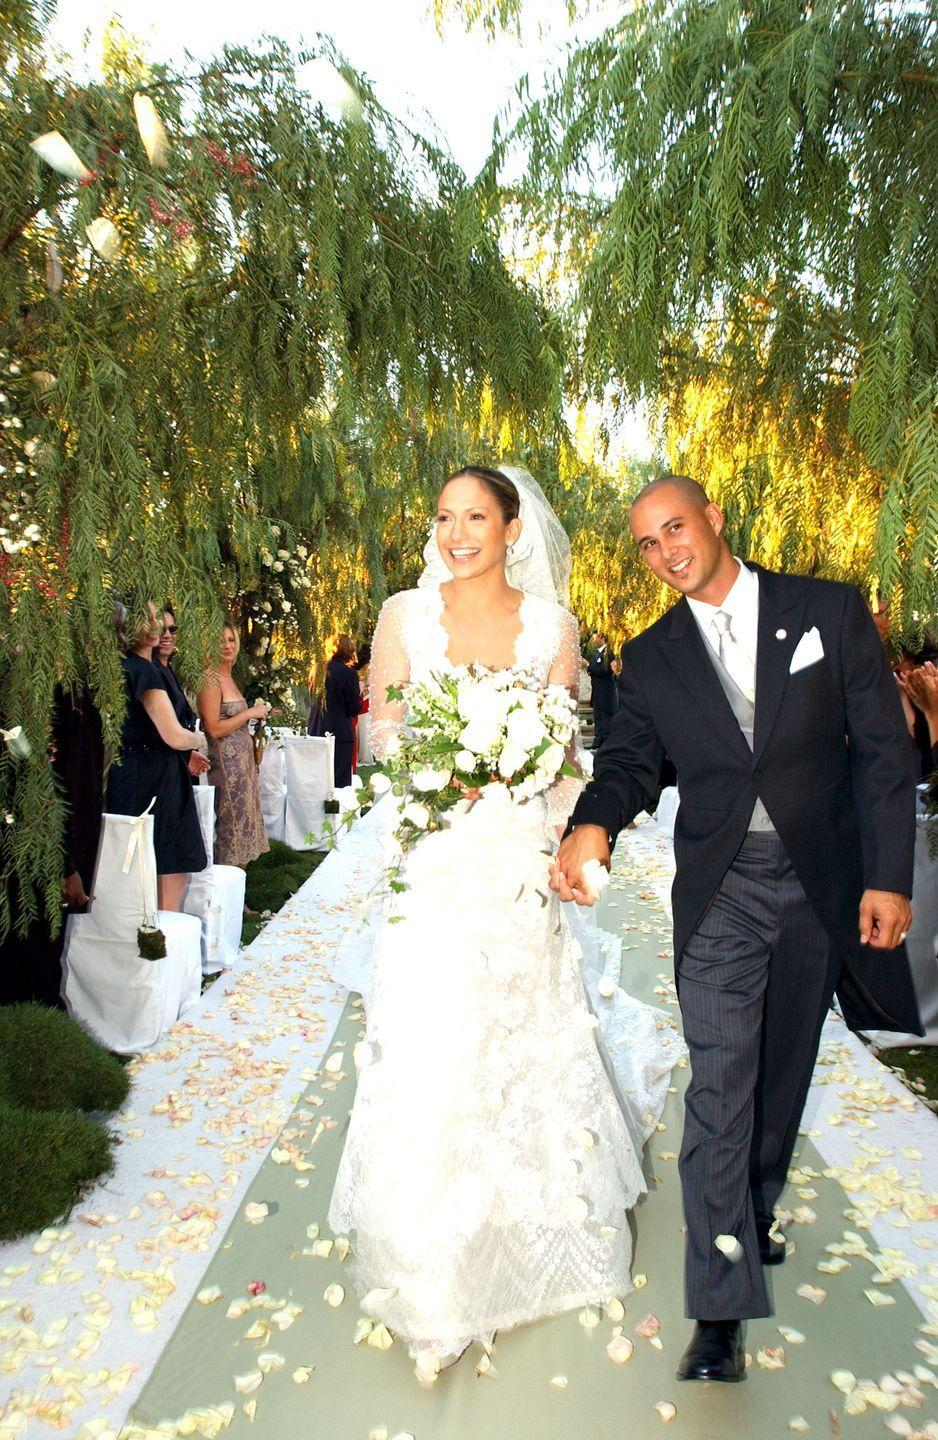 "<p>JLo's second wedding was a whirlwind. She married her backup dancer, Cris Judd, less than eight months after splitting from her boyfriend of two years, Sean Combs. Jennifer wore a Valentino gown and the duo put together their wedding plans in just <a href=""https://ew.com/article/2001/10/03/j-lo-says-i-do/"" rel=""nofollow noopener"" target=""_blank"" data-ylk=""slk:three months"" class=""link rapid-noclick-resp"">three months</a>.</p>"